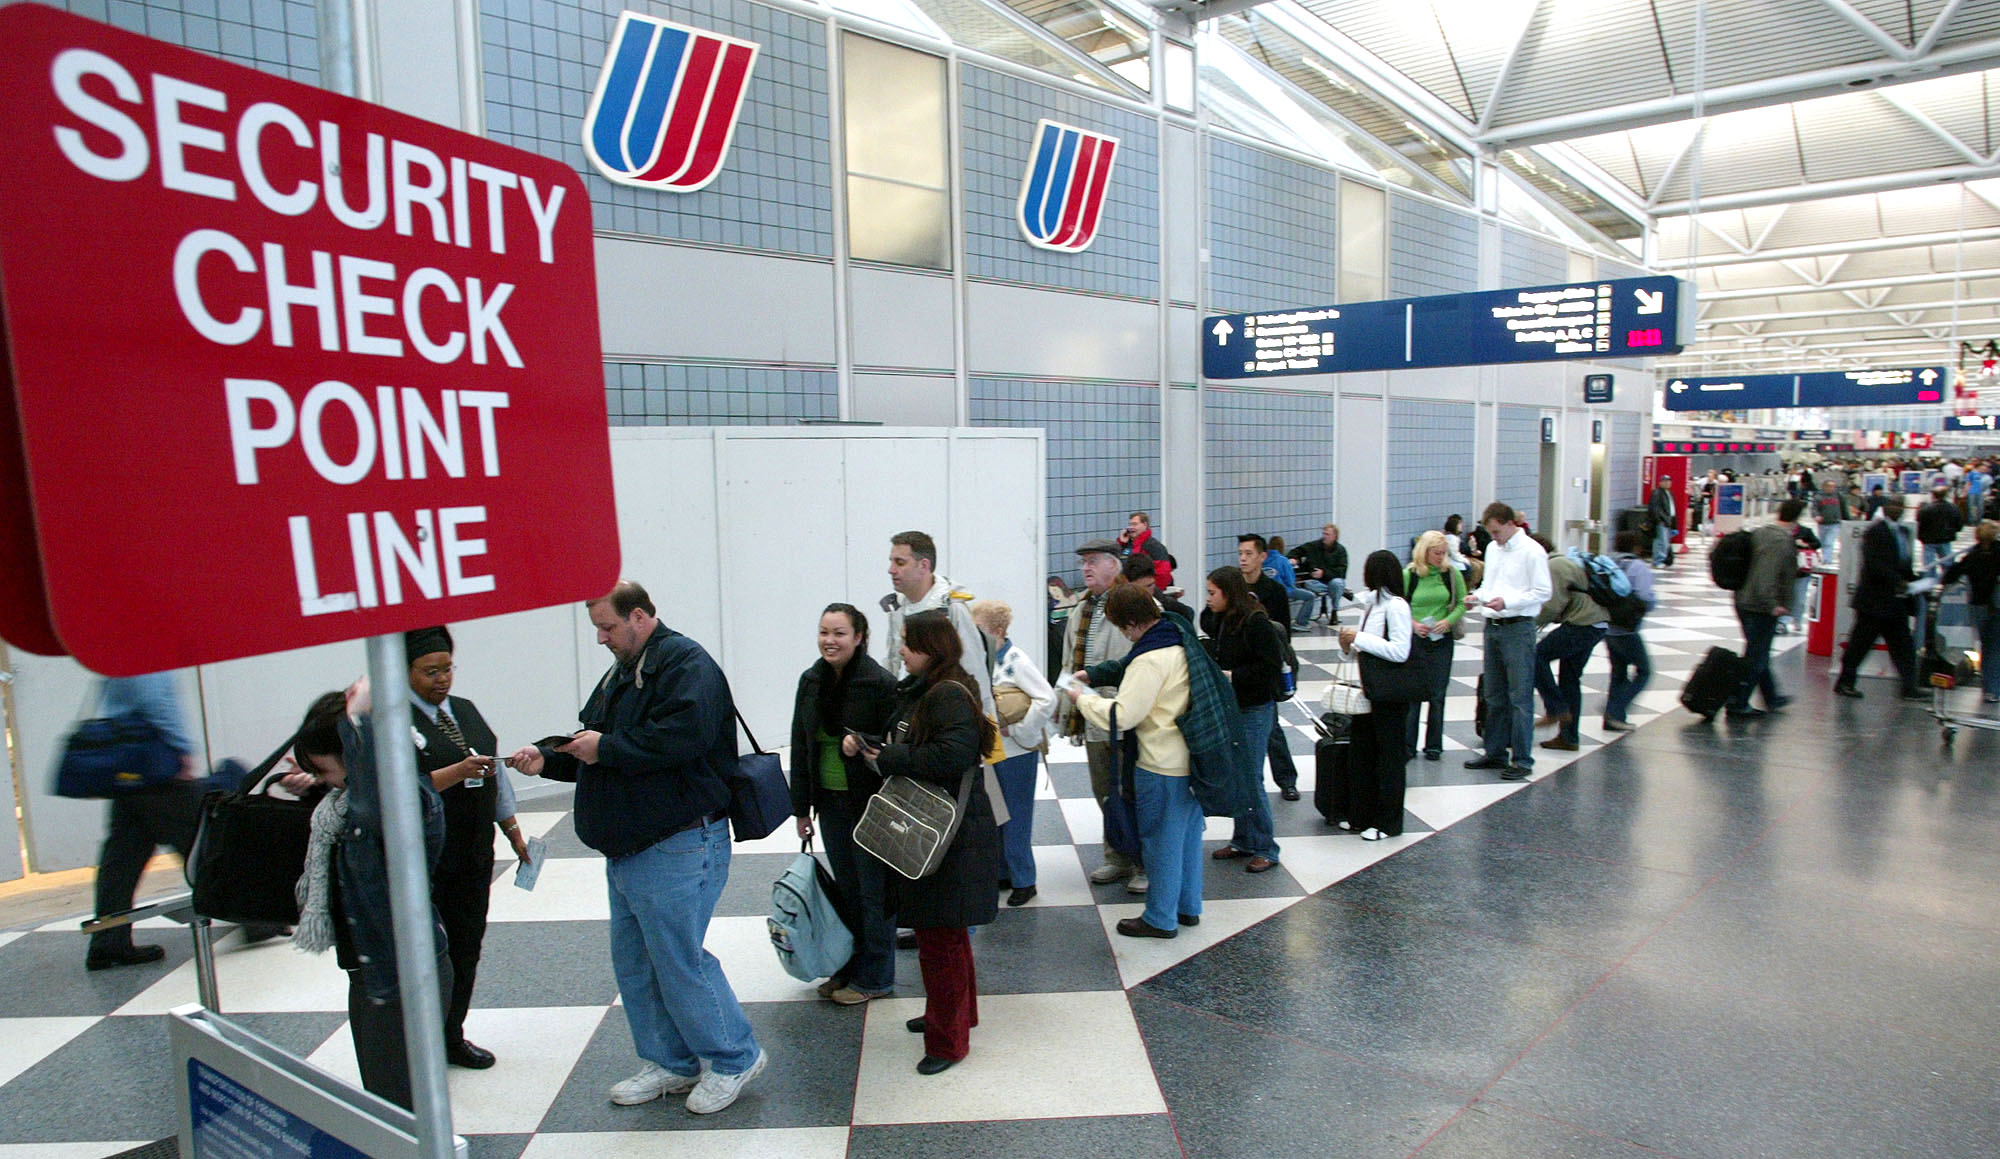 Thanksgiving travelers line up to go though a security check